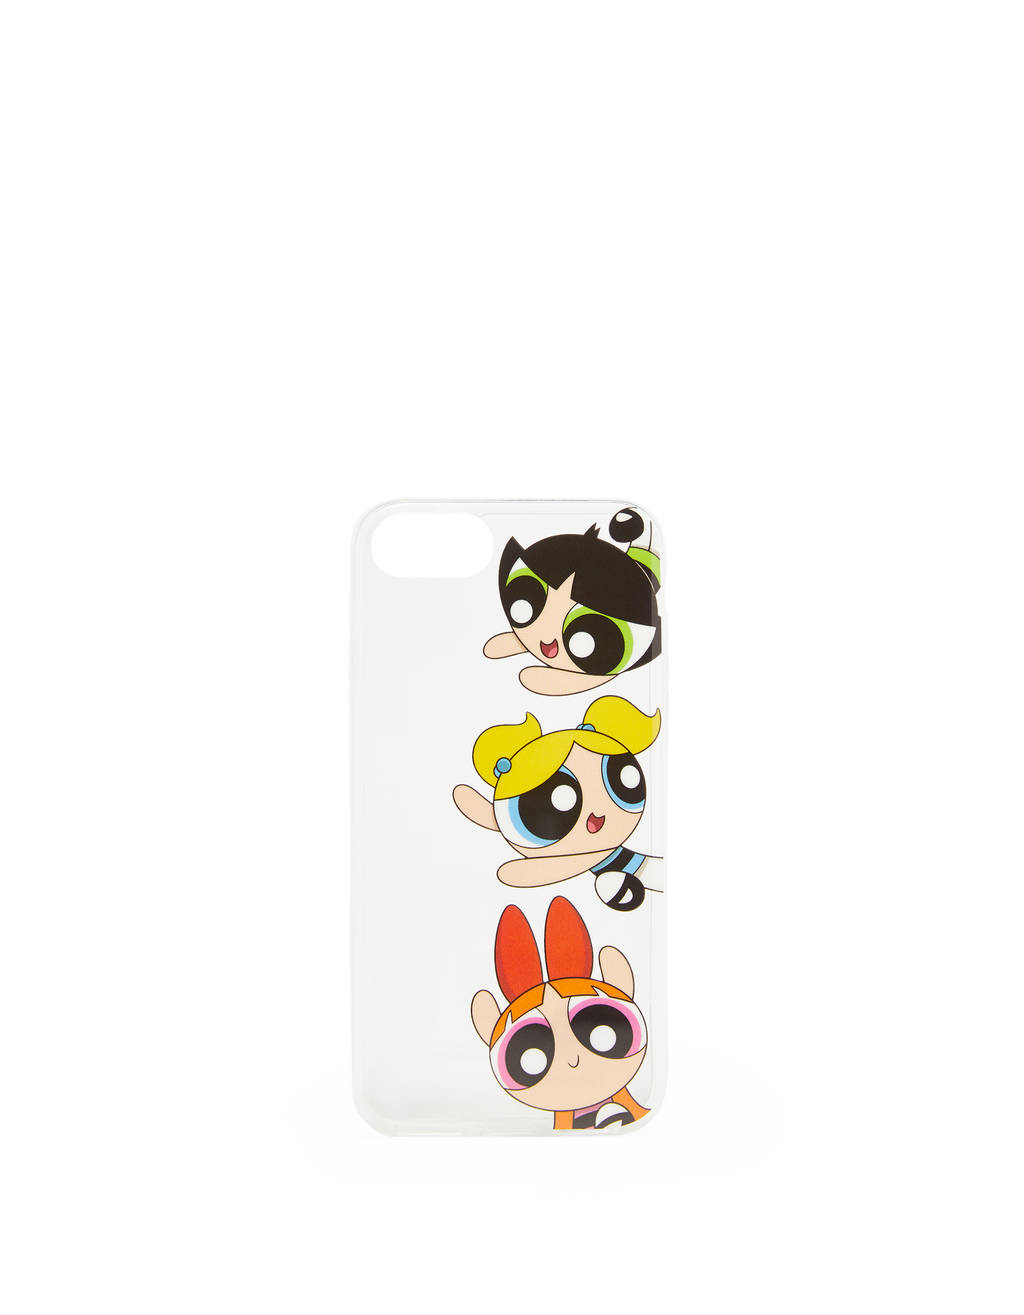 Carcasa Supernenas iPhone 6 / 7 / 8